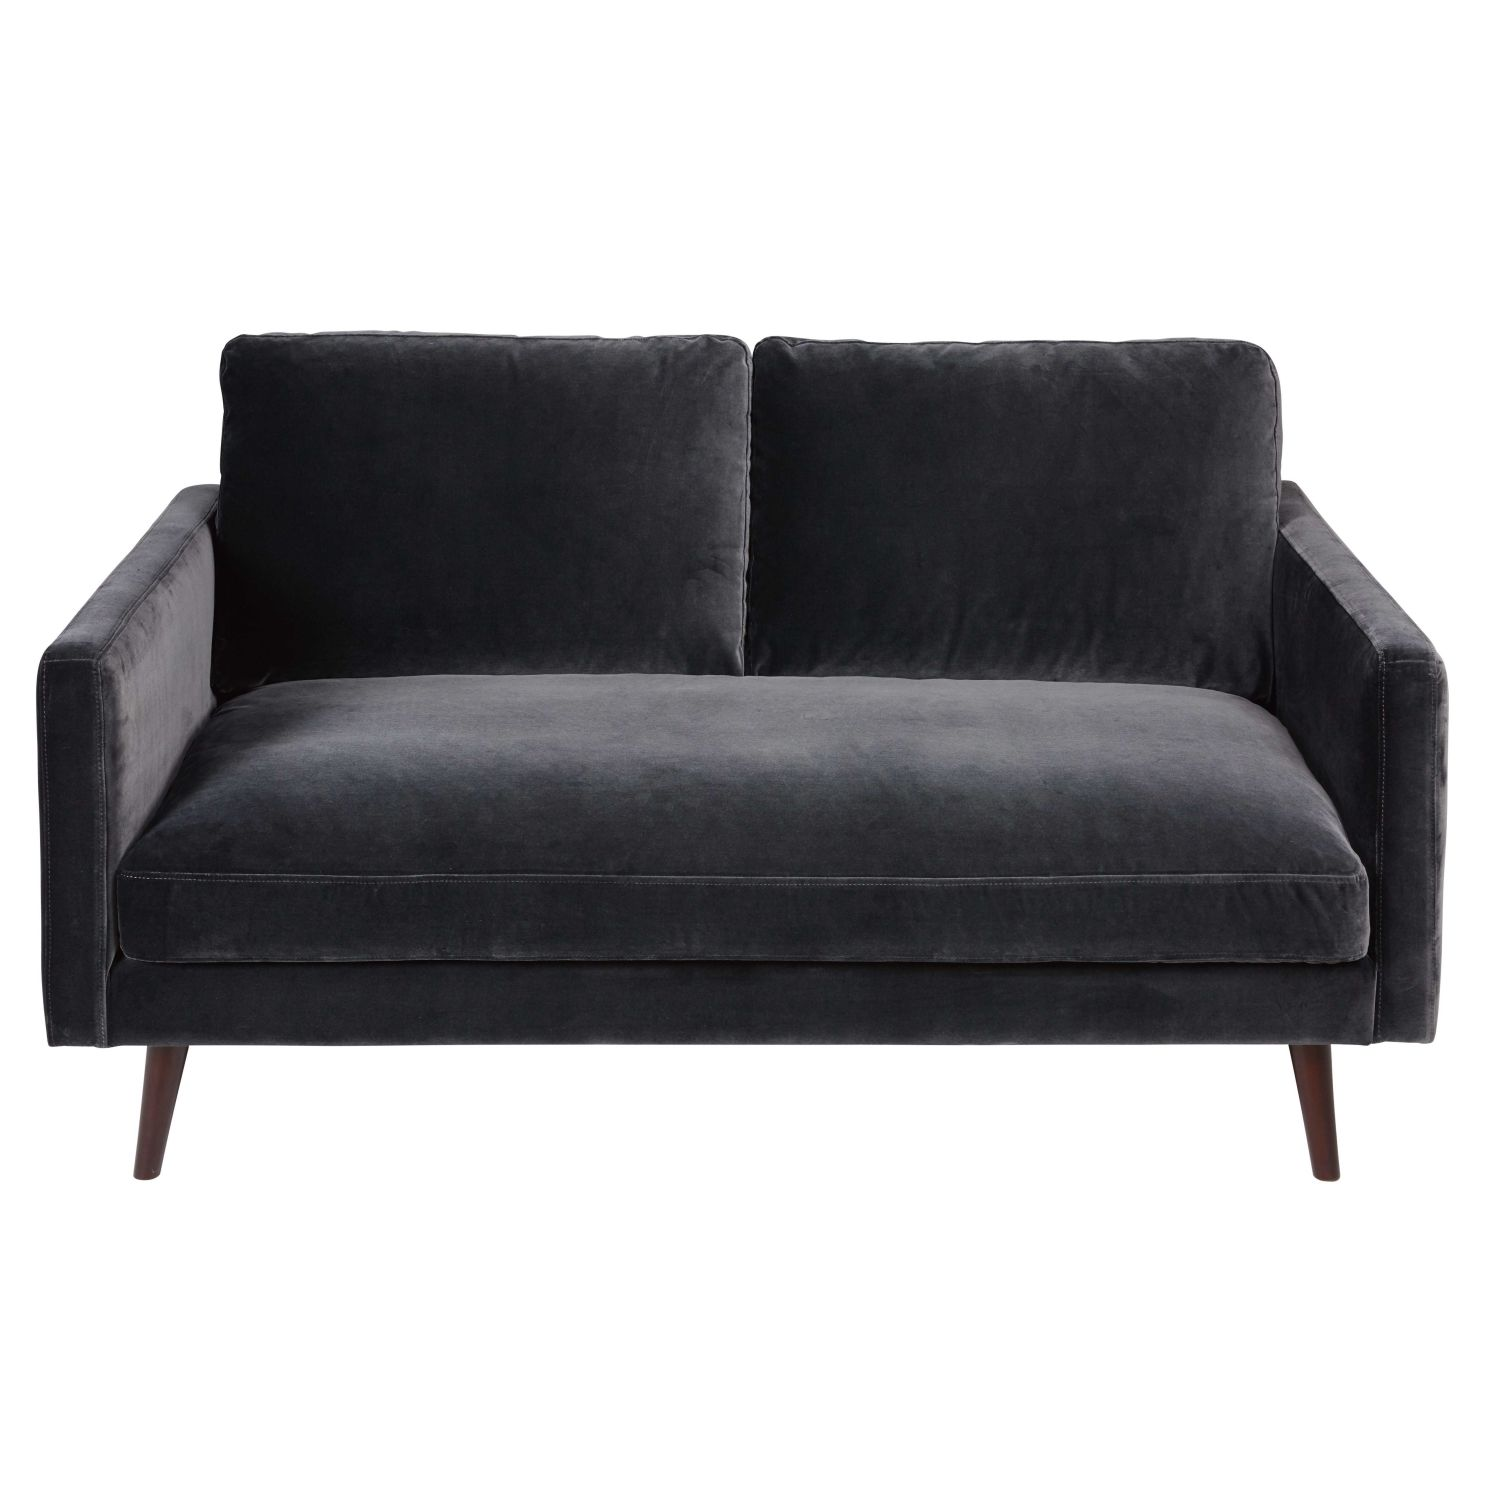 2 sitzer sofa aus samt grau maisons du monde. Black Bedroom Furniture Sets. Home Design Ideas